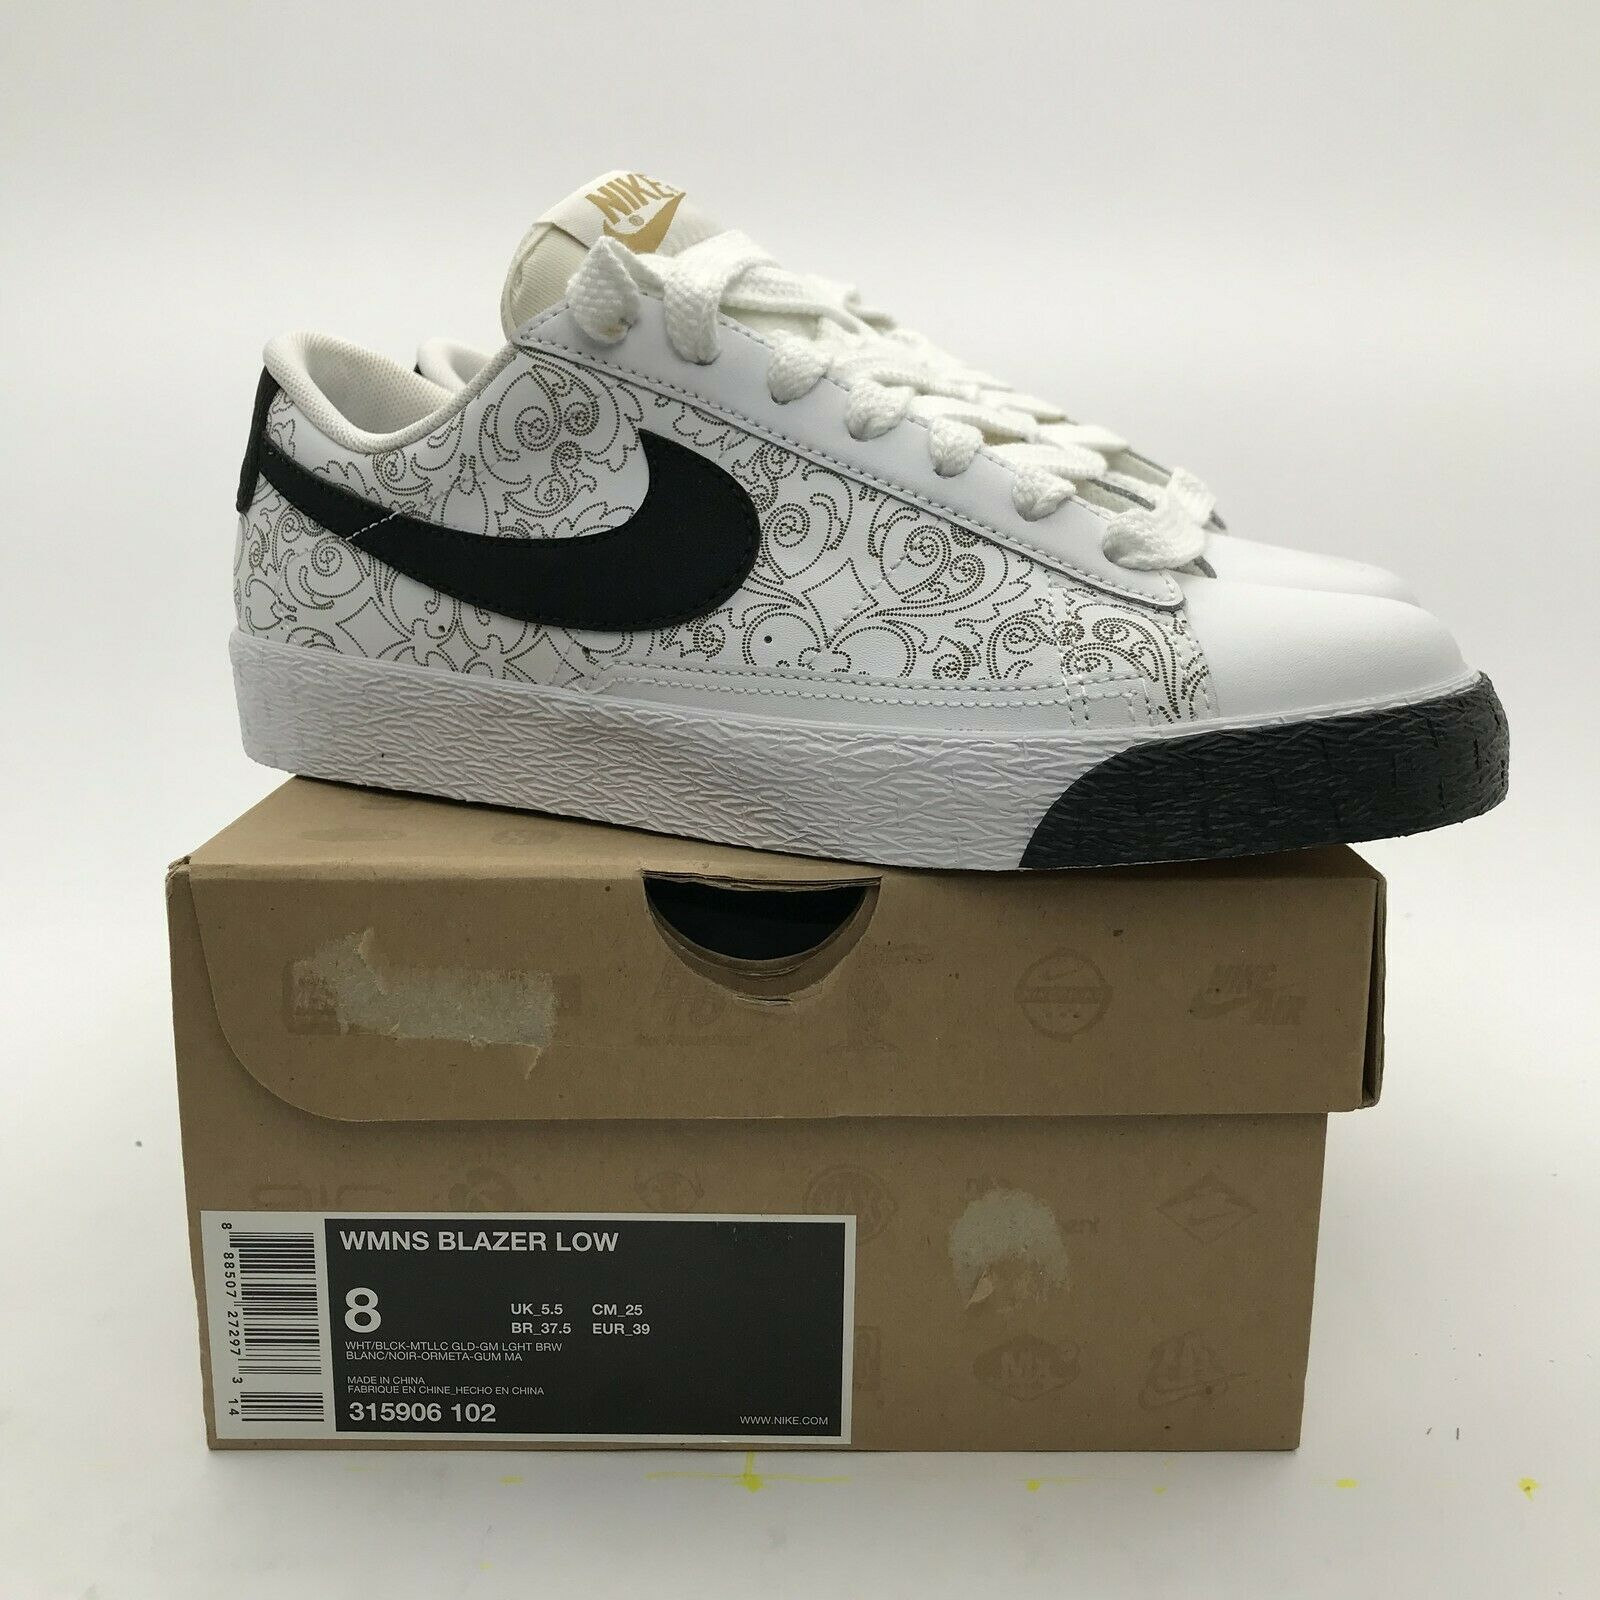 2009 Nike SB WMNS Blazer Low White Black Metallic gold 315906-102 NEW rare US 8